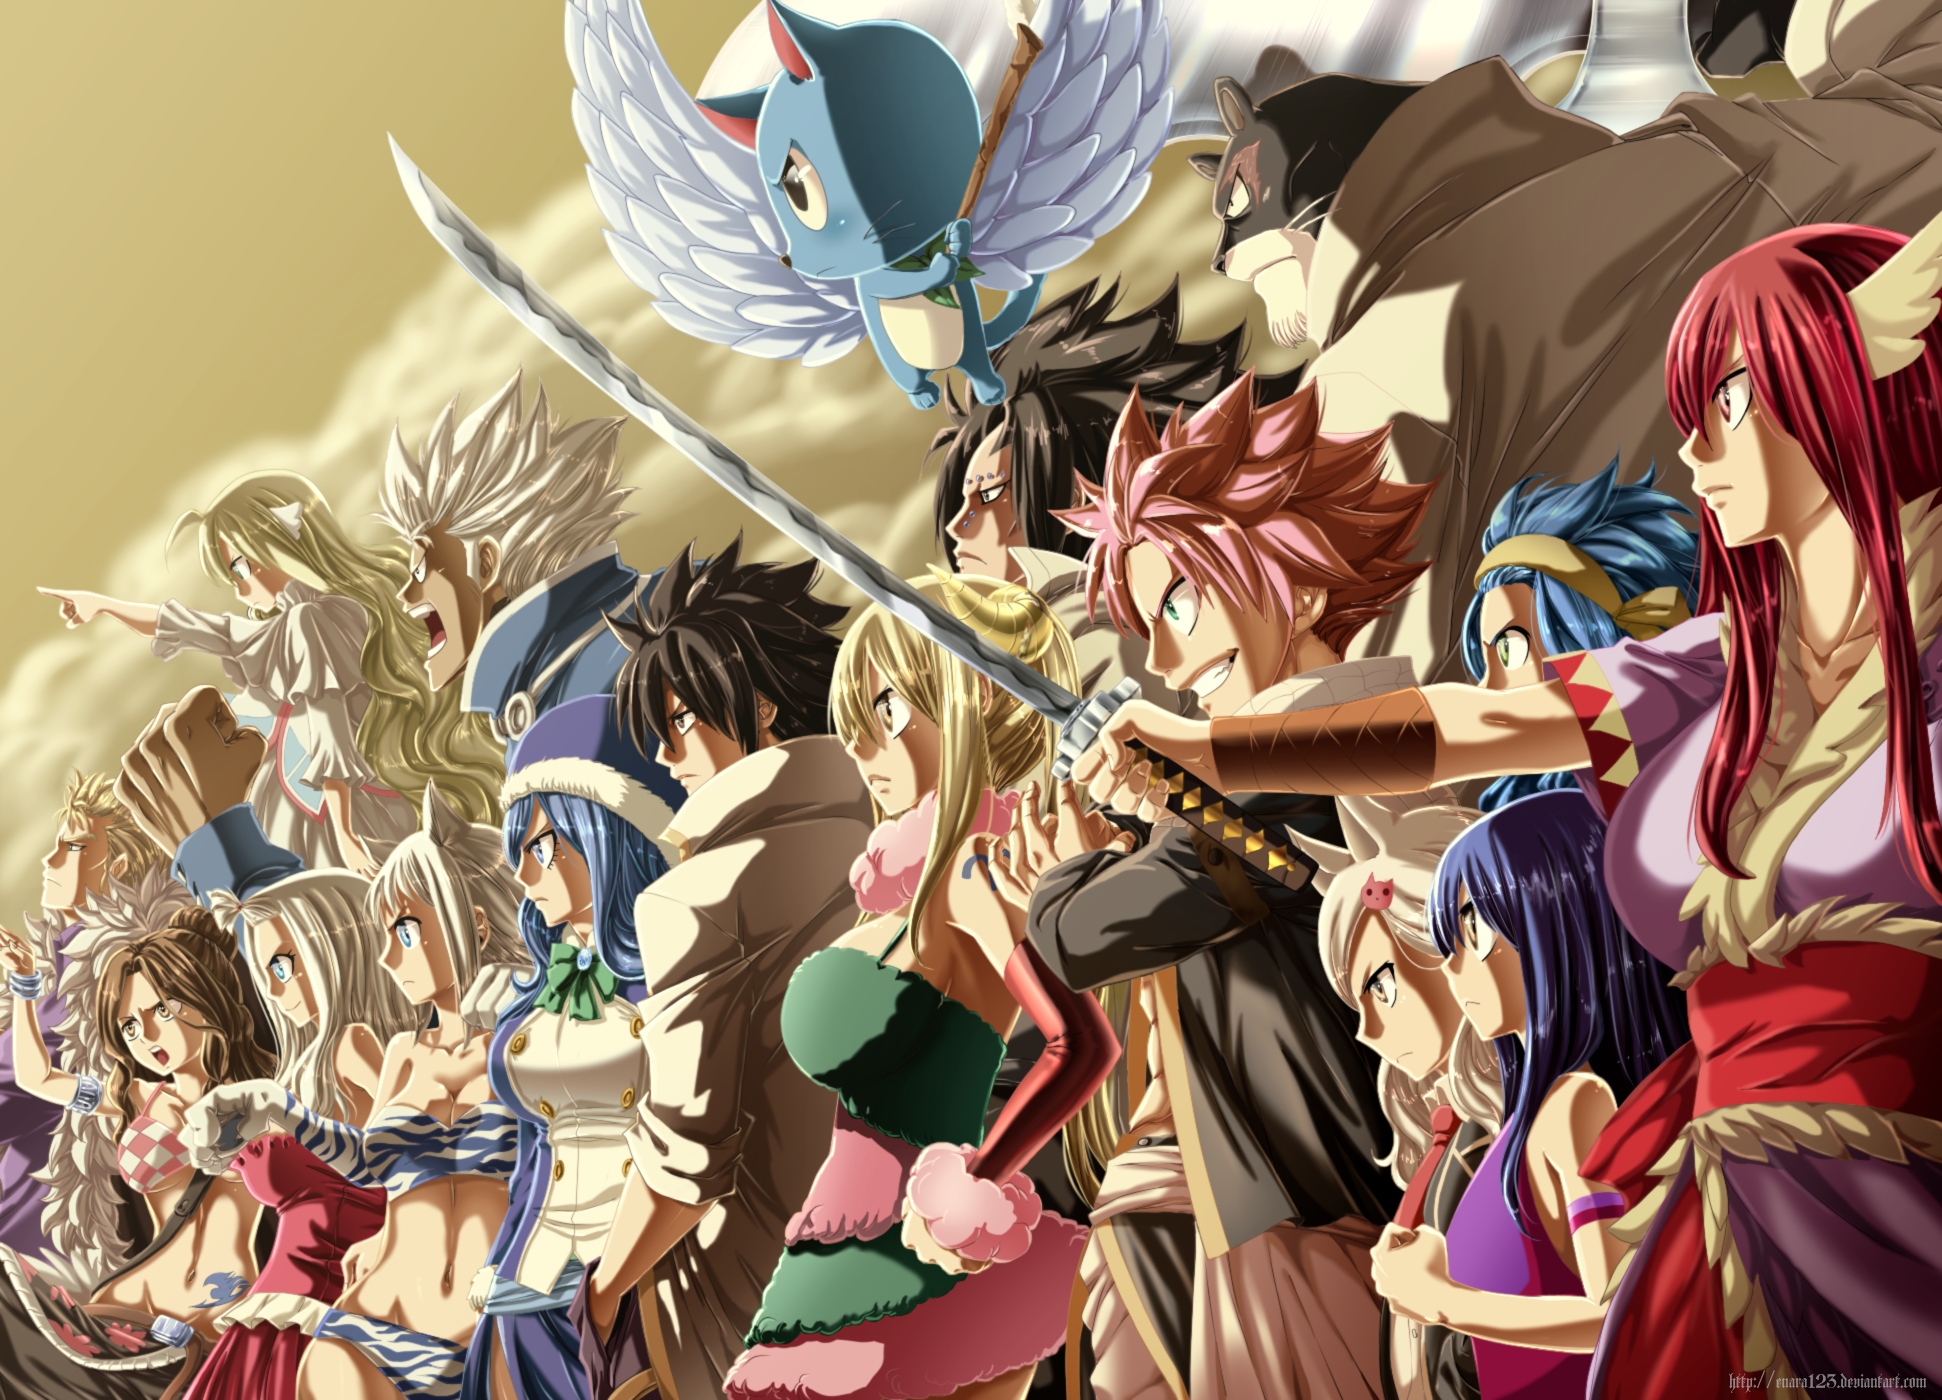 View, download, comment, and rate this 1942x1400 Fairy Tail Wallpaper - Wallpaper Abyss